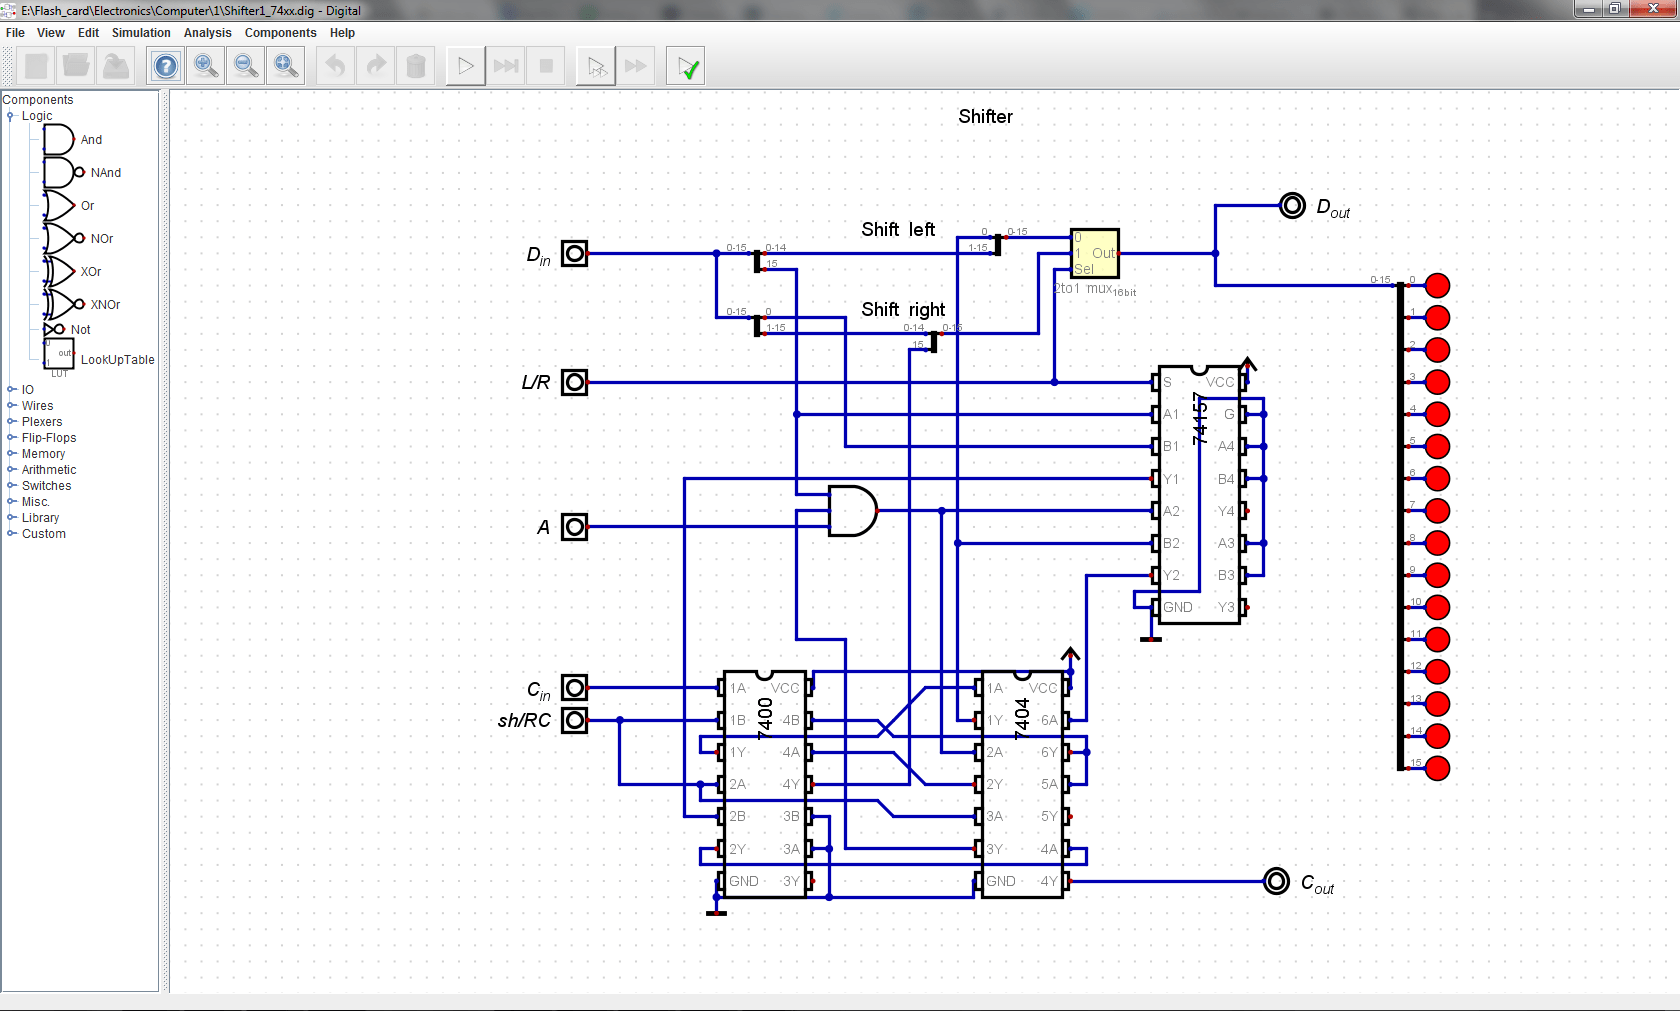 hight resolution of fast adder takes in c in a in and b outputs s and c out it is comprised of four chained 4 bit fast adder units constructed from simple logic gates